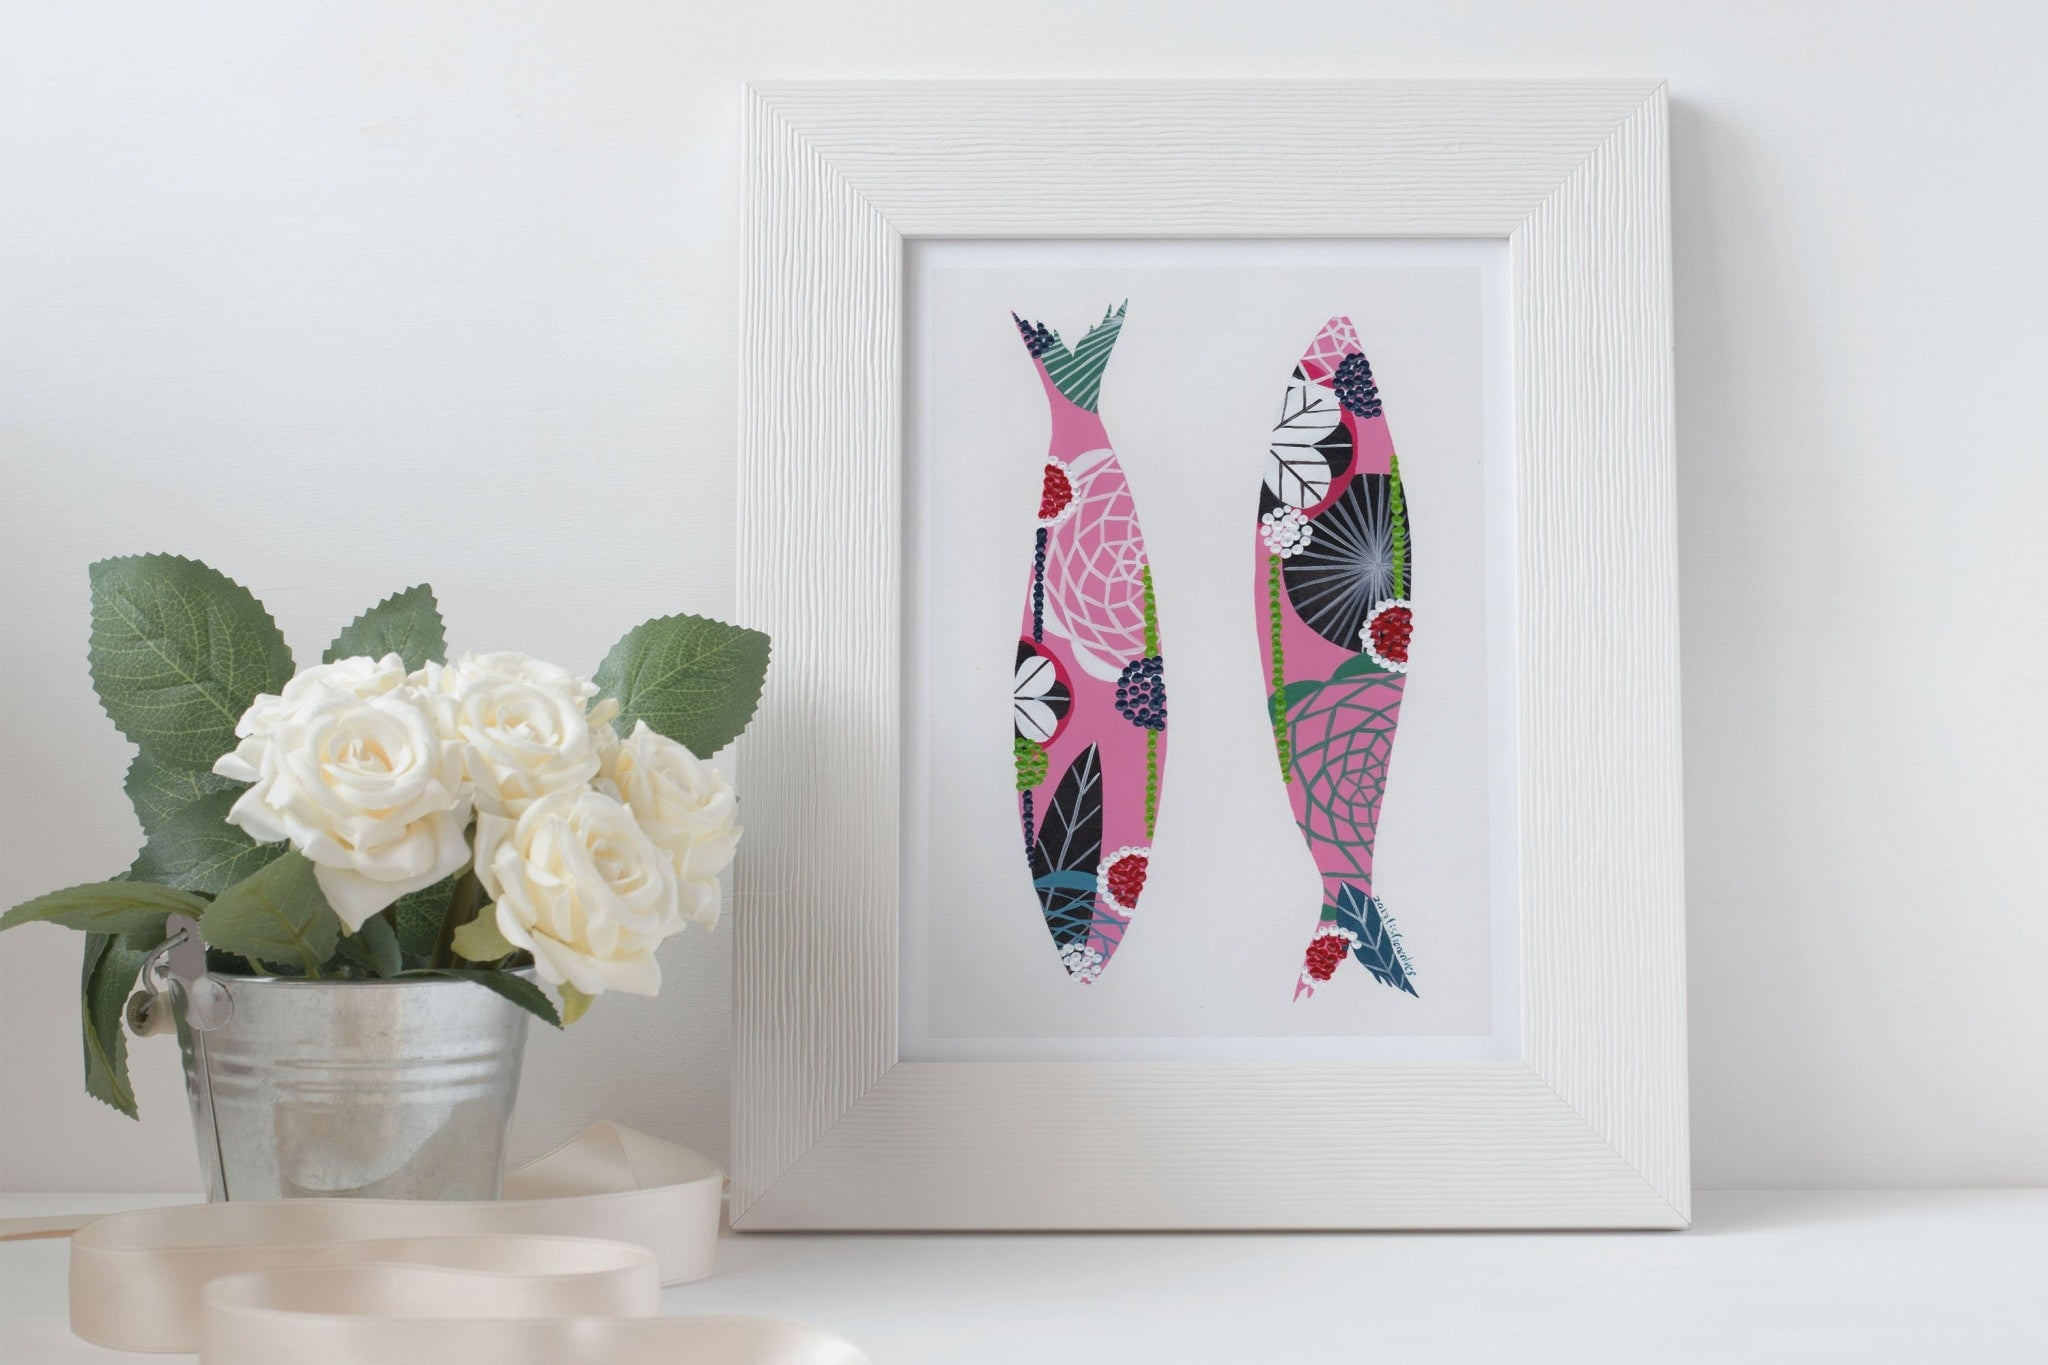 Sardines art print in pink by Lis Goncalves